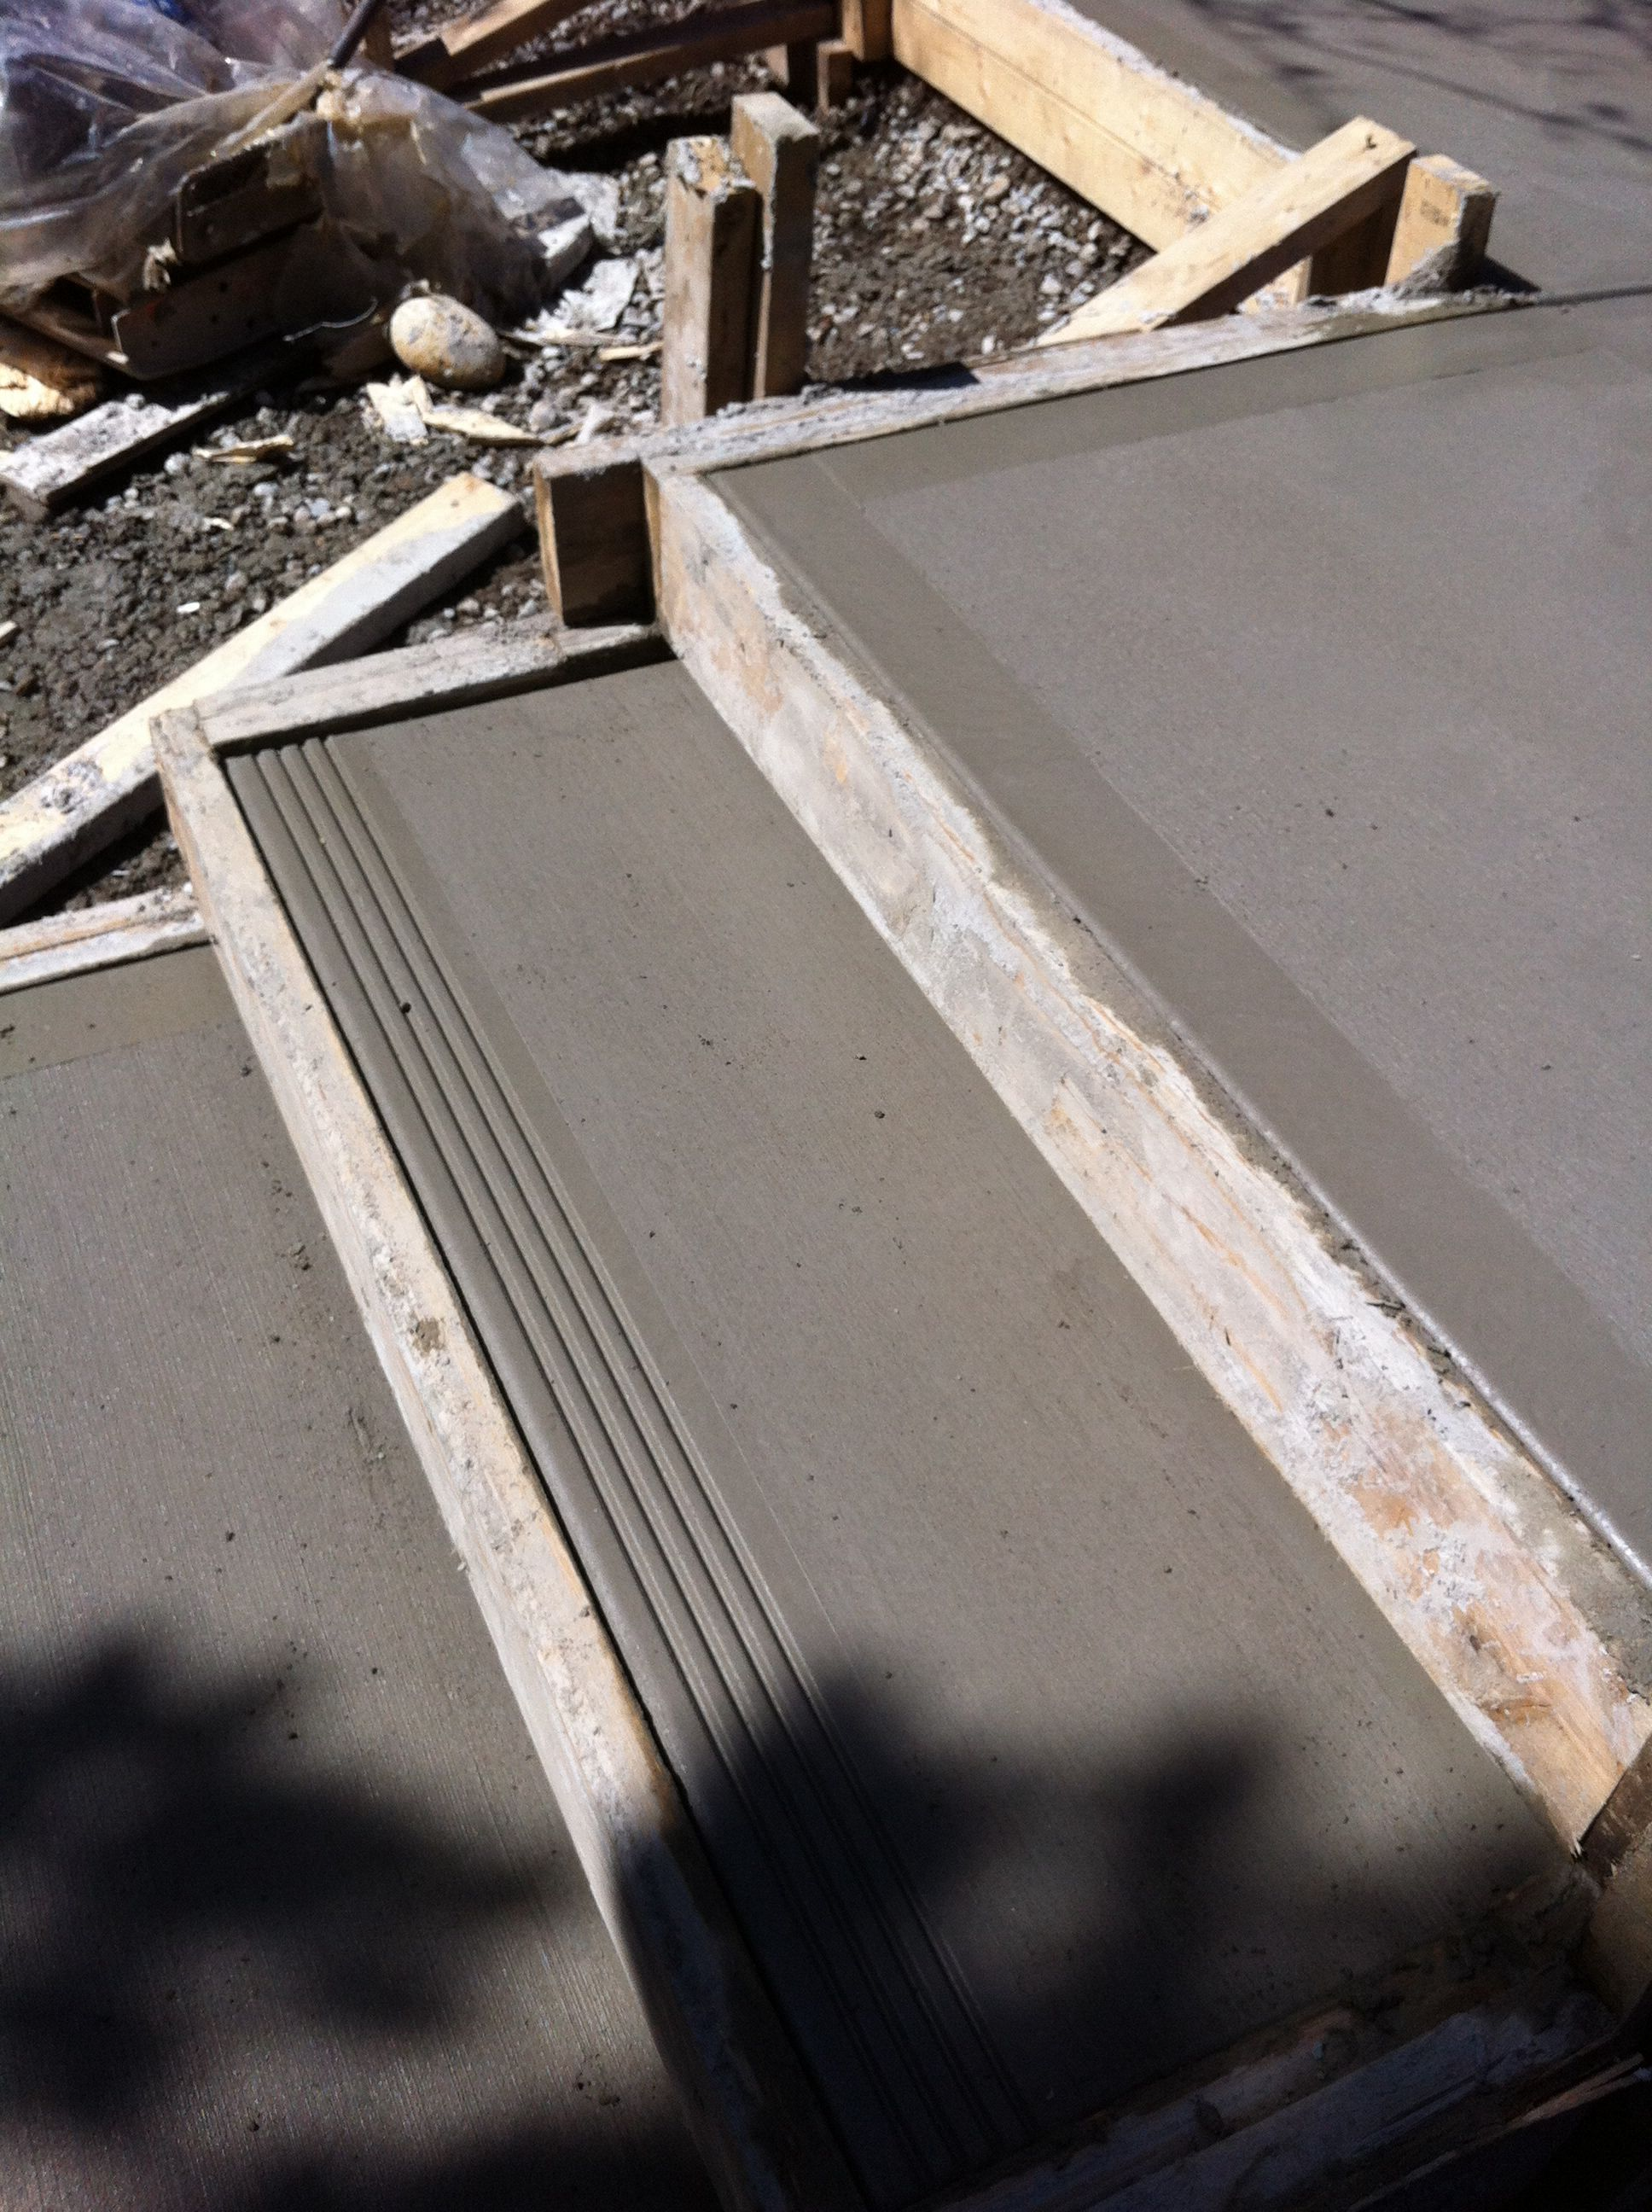 4 Steps To Success: Broom Finish Concrete Step With 4 Grooved Edge. By Dan